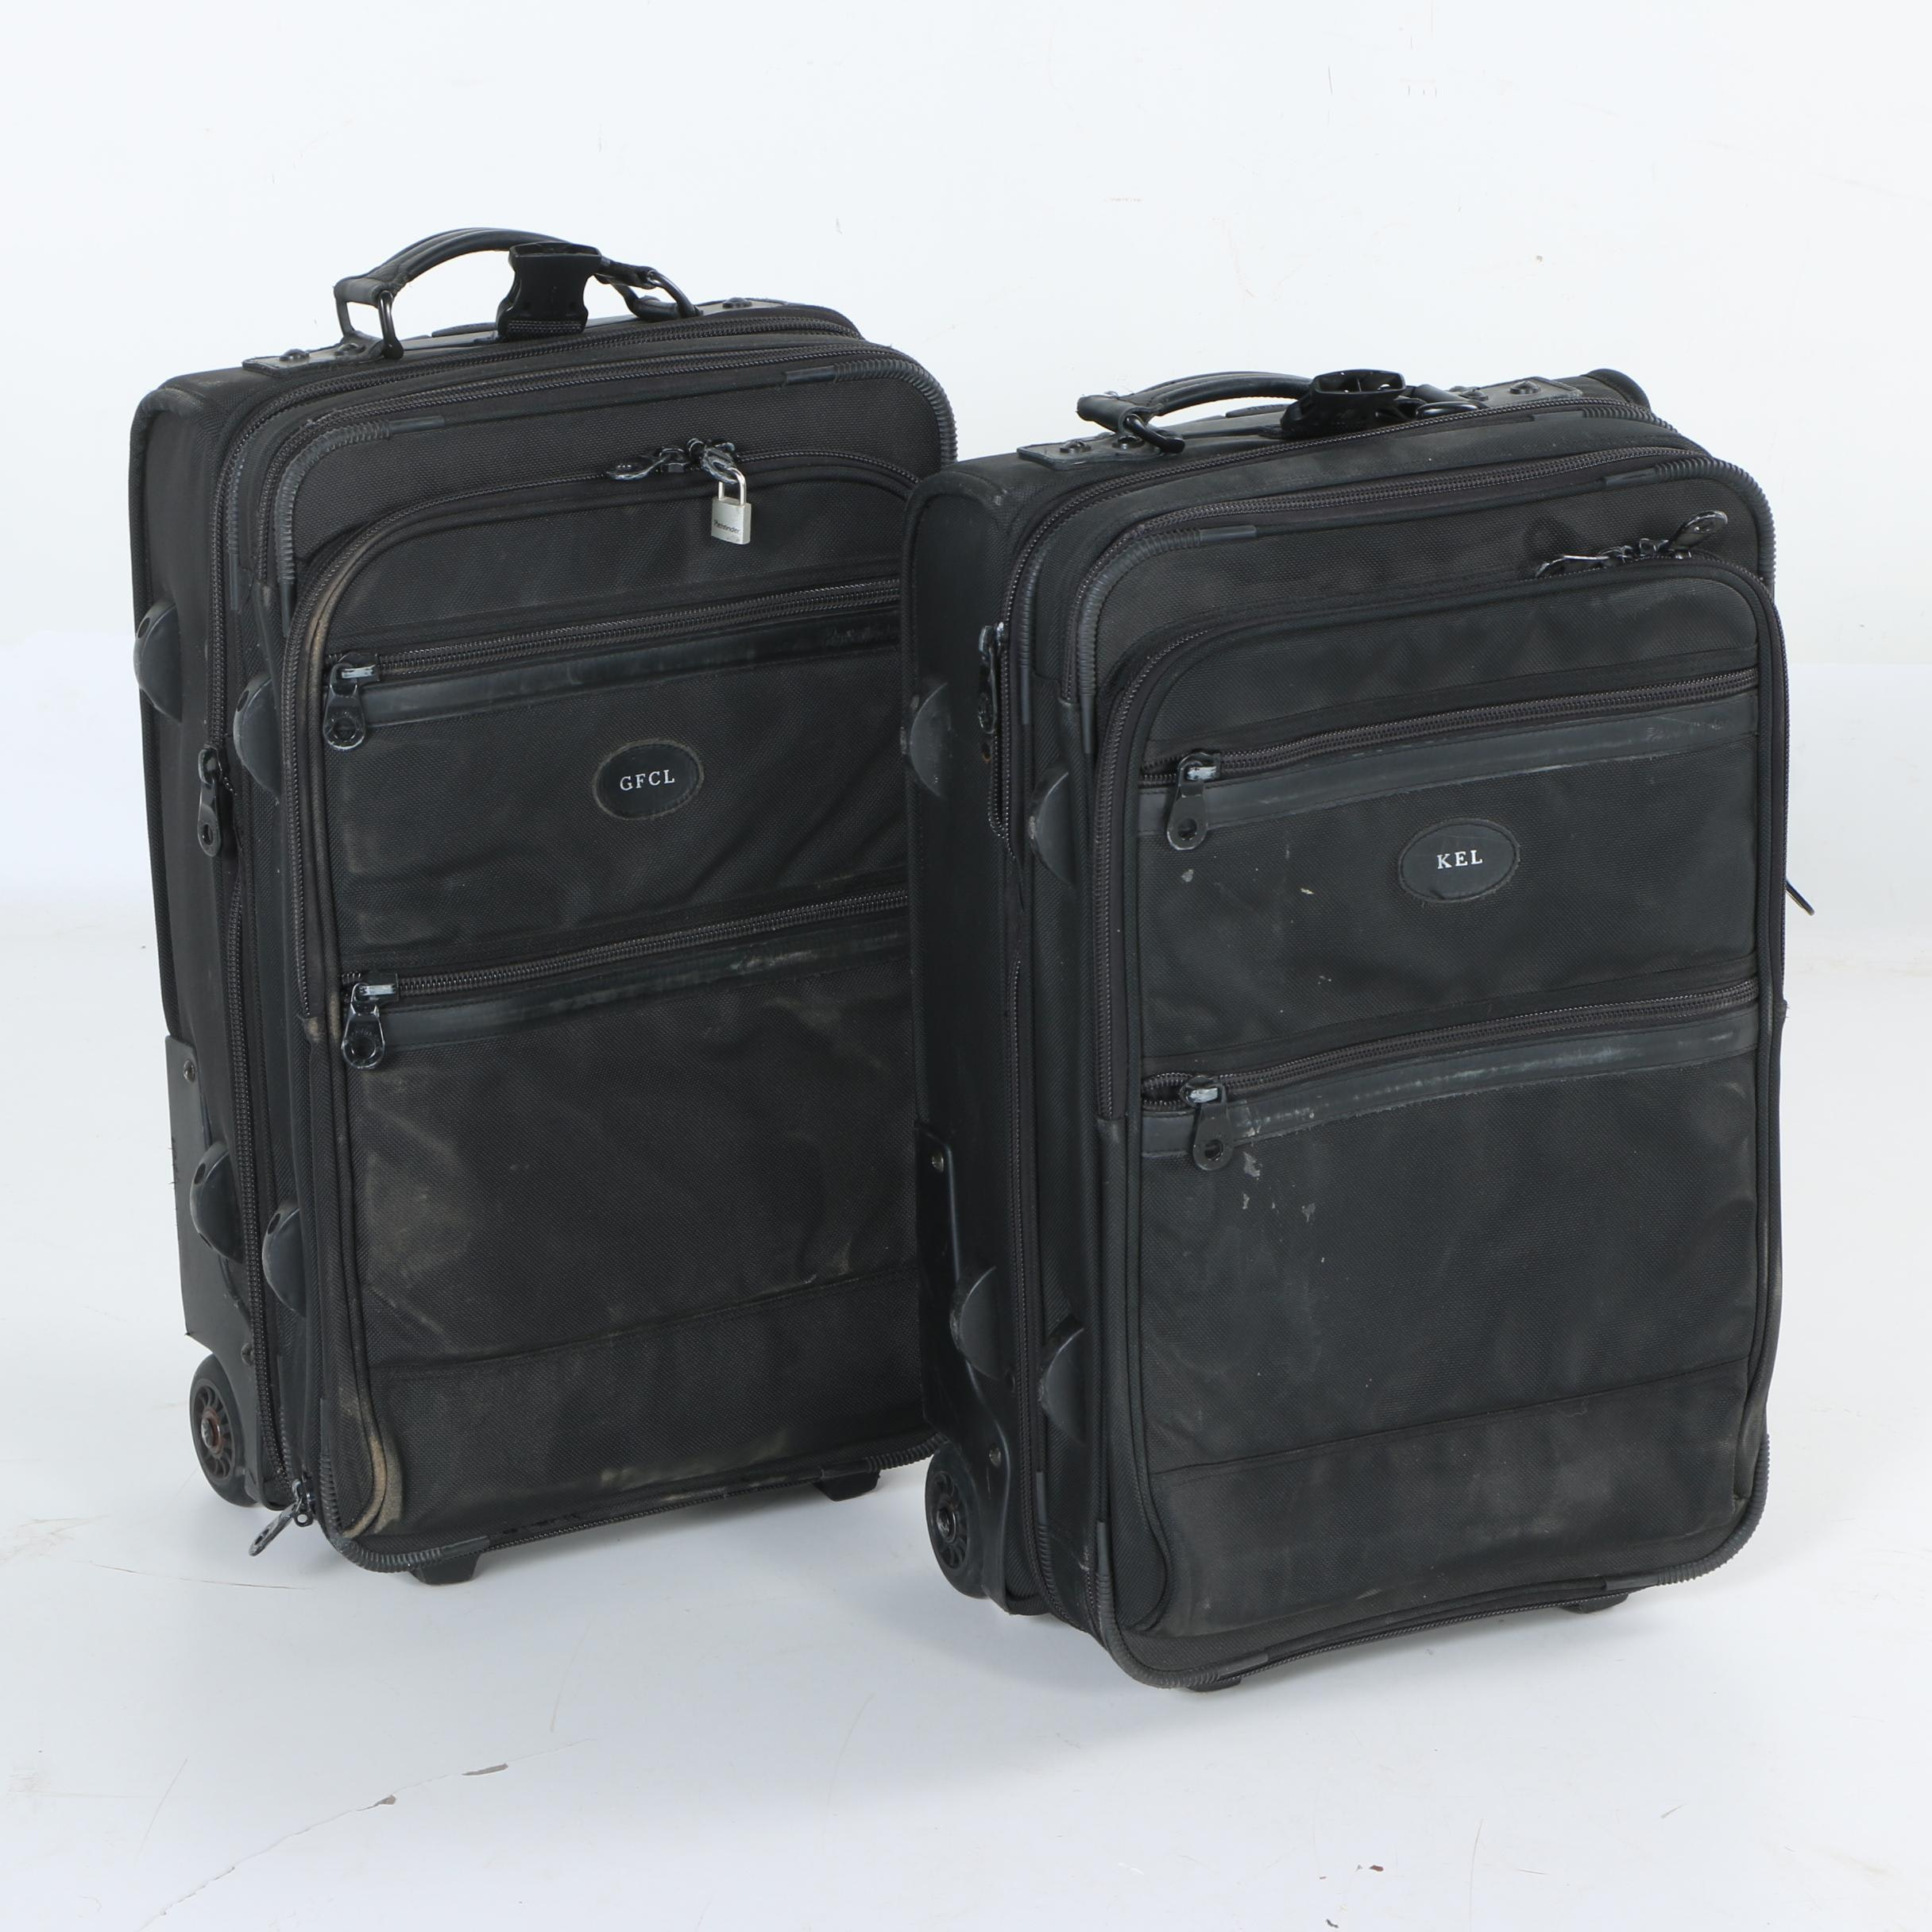 Black Suitcases by DuPont